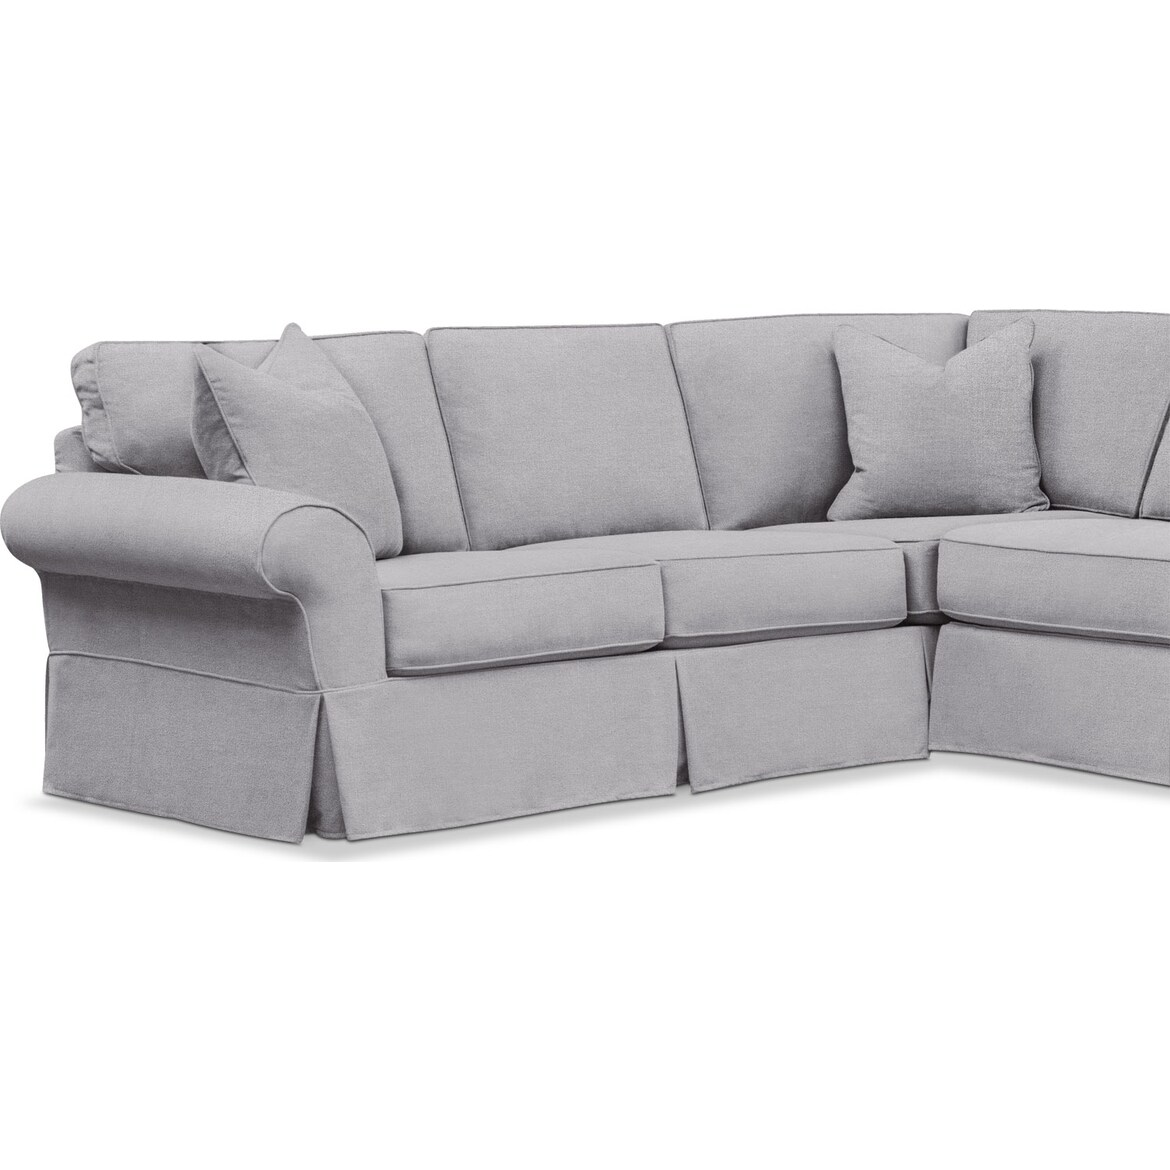 Sawyer 3-Piece Slipcover Sectional with Chaise | Value City ...